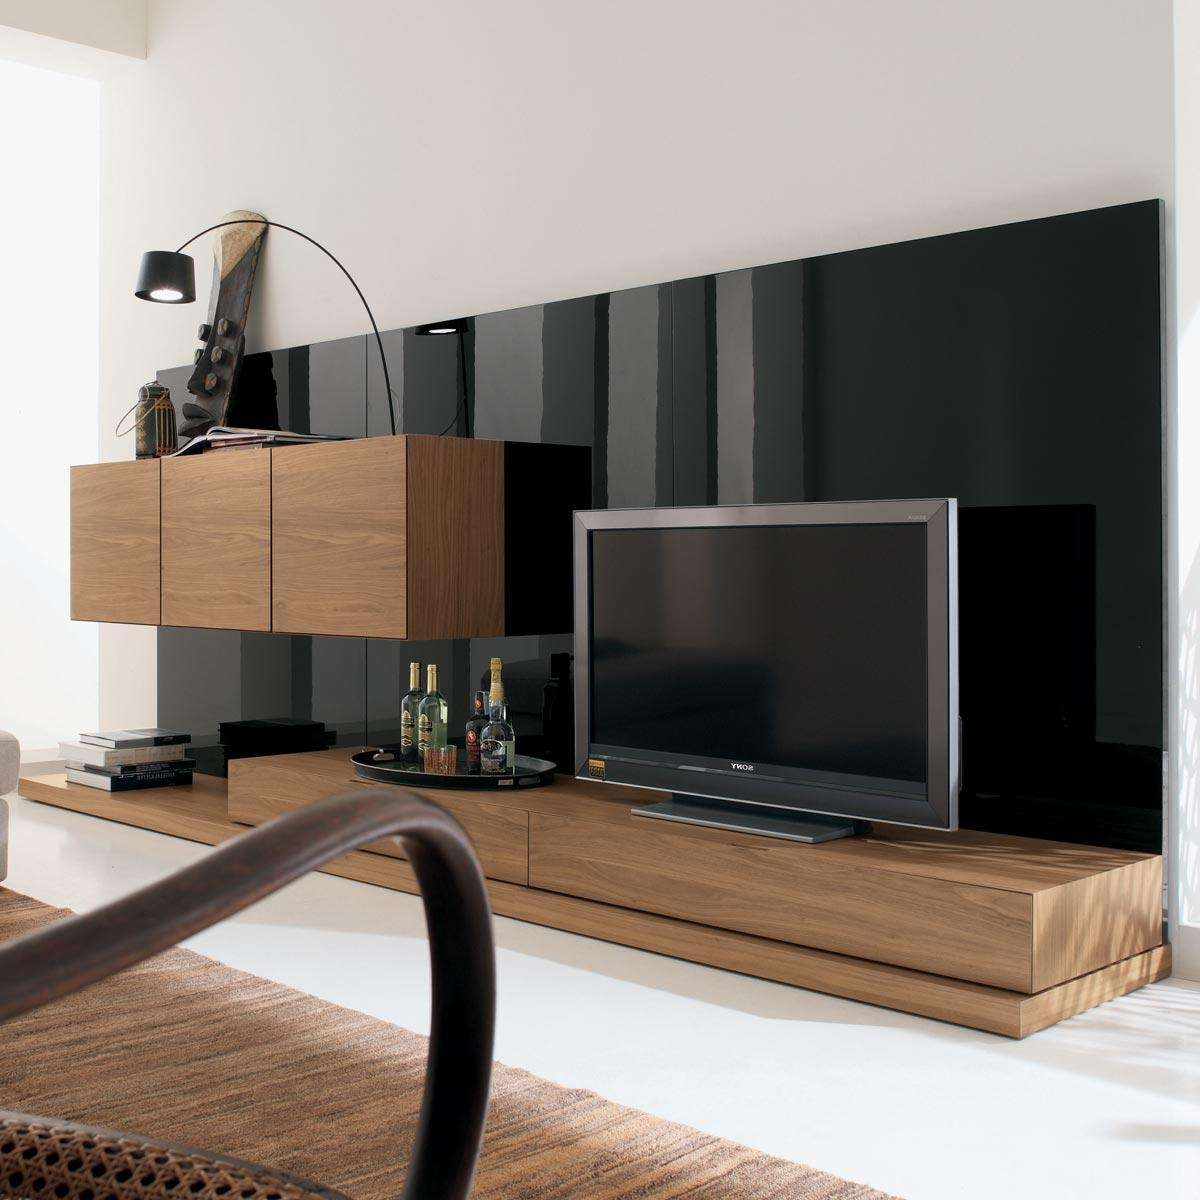 Modern Nature Wood Big Screen Tv Stand Wall Mounted Living Room Intended For Tv Cabinets Contemporary Design (View 17 of 20)